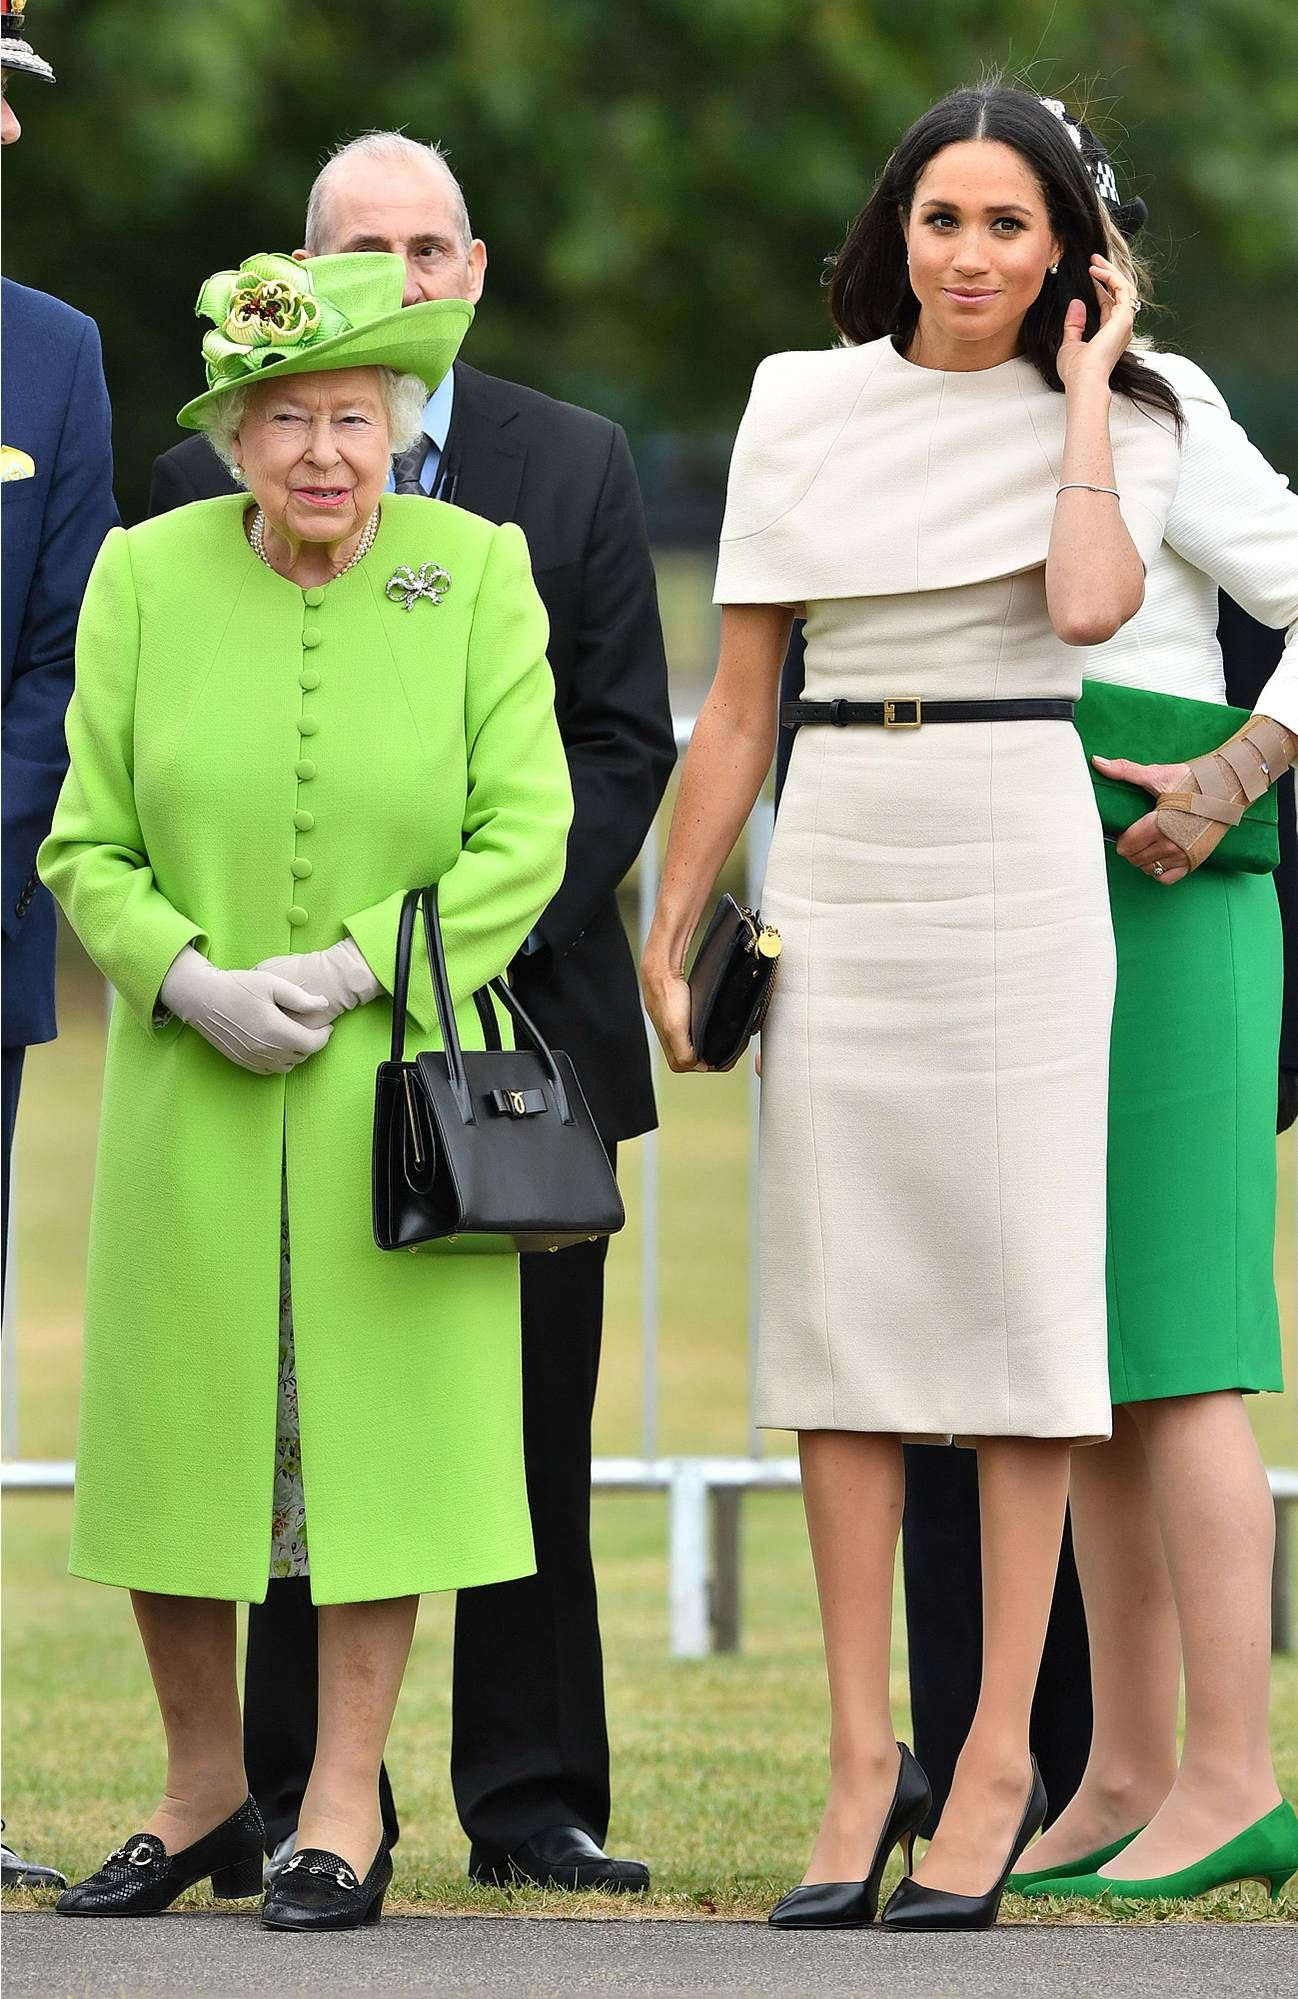 Pin by Ye Jin Jun on Duchess Meghan...is Her Royal Highness! | Meghan markle style, Meghan markle, Prince harry and megan